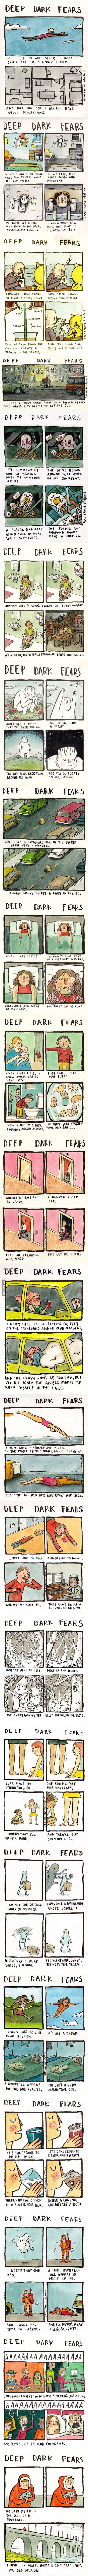 All the Deep Dark Fears Part (2 of 5)